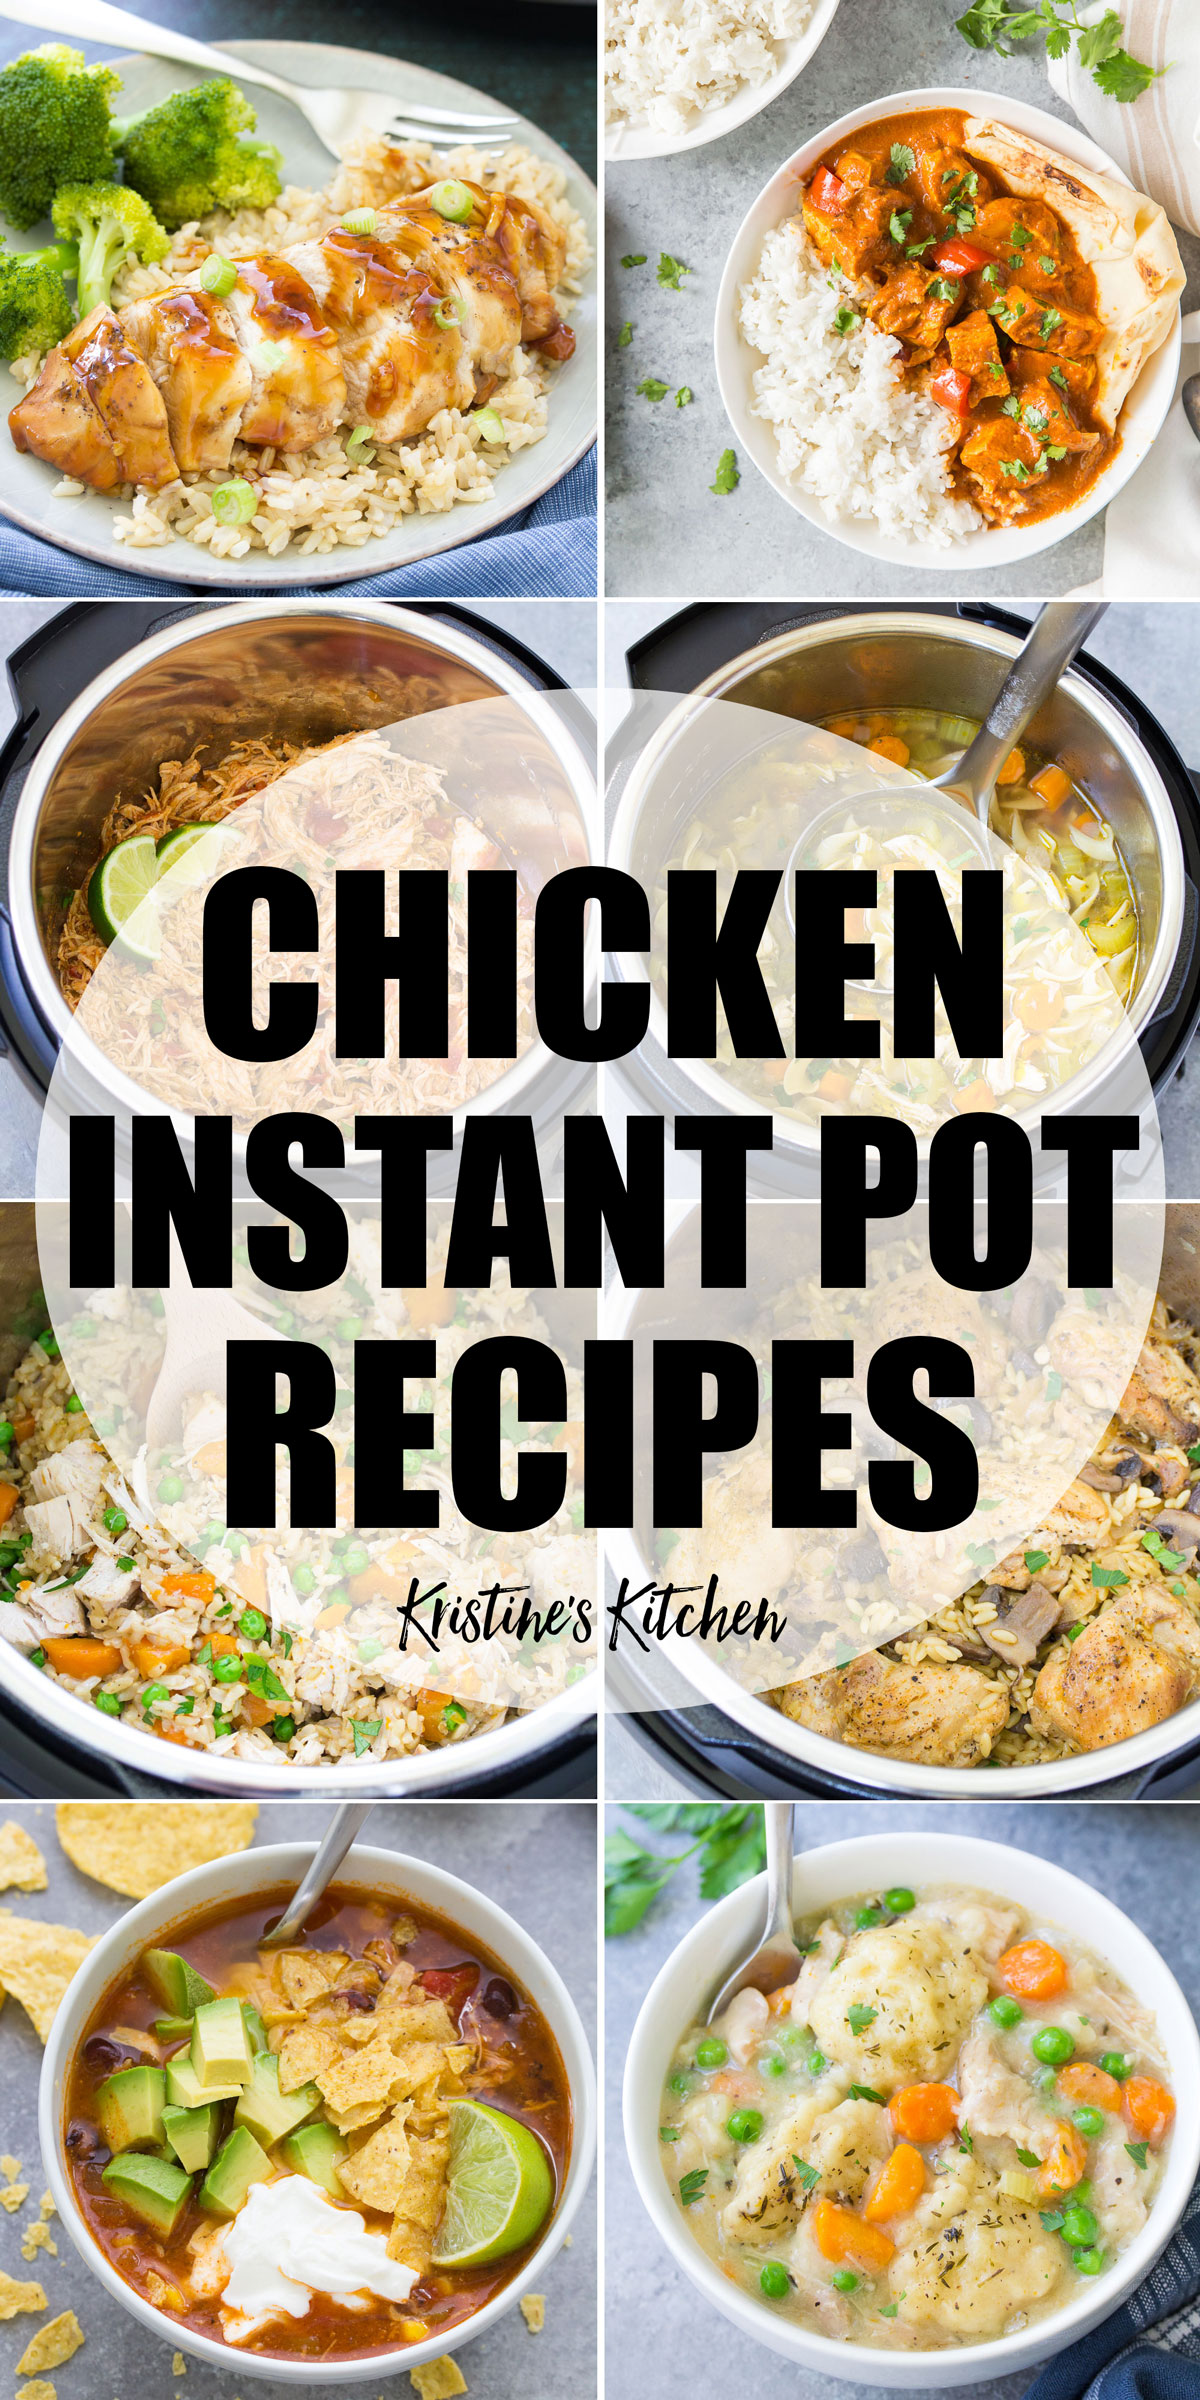 collage of instant pot chicken recipes photos